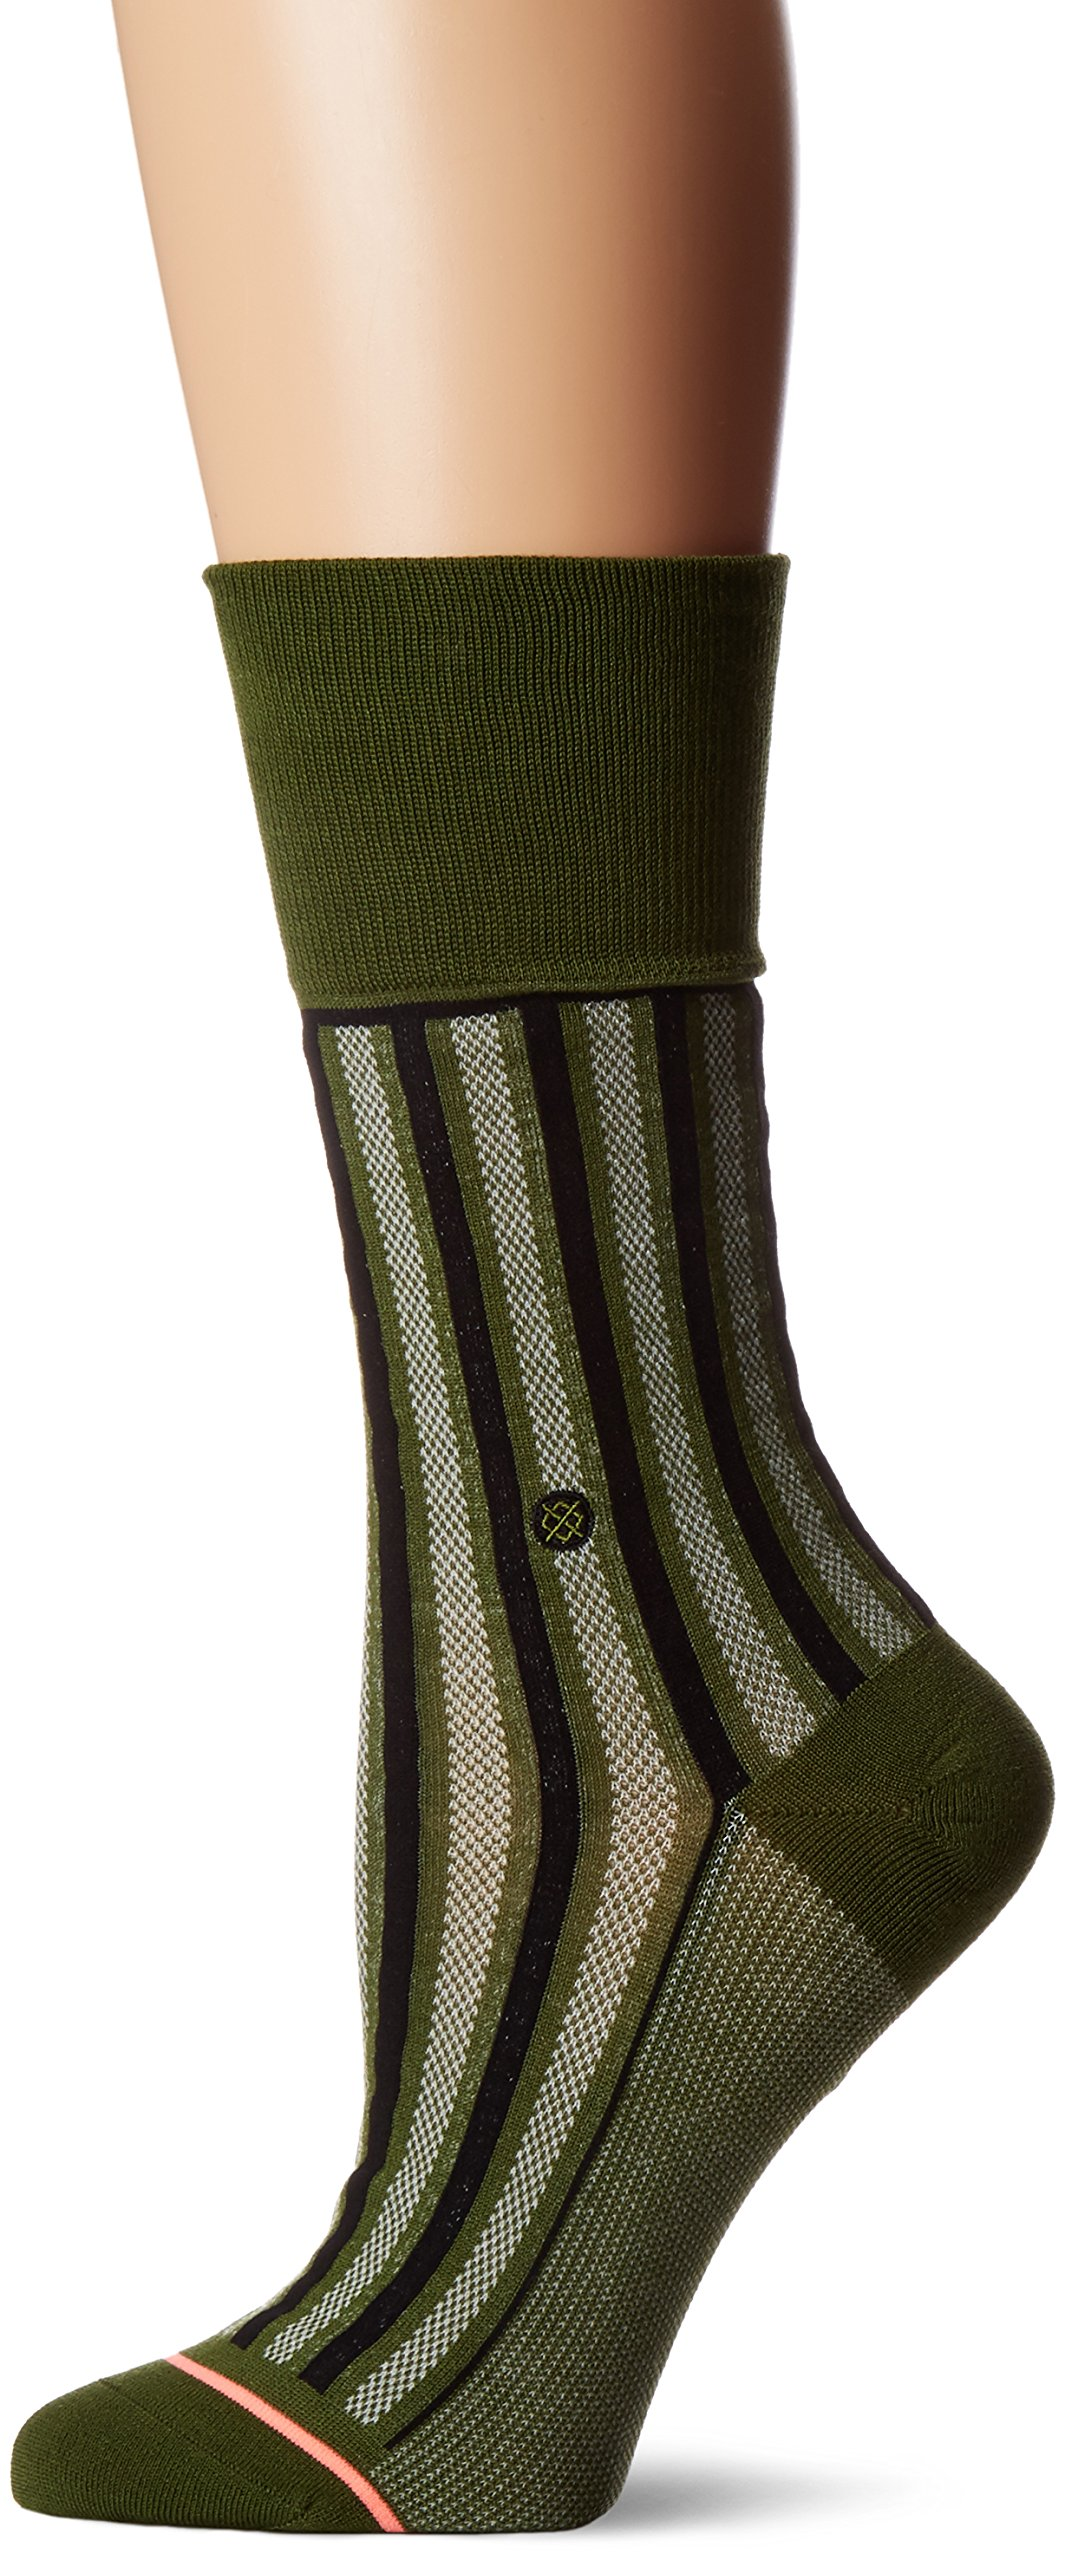 Stance Women's Stripe up Arch Support Everyday Crew Sock, Army Green, One Size